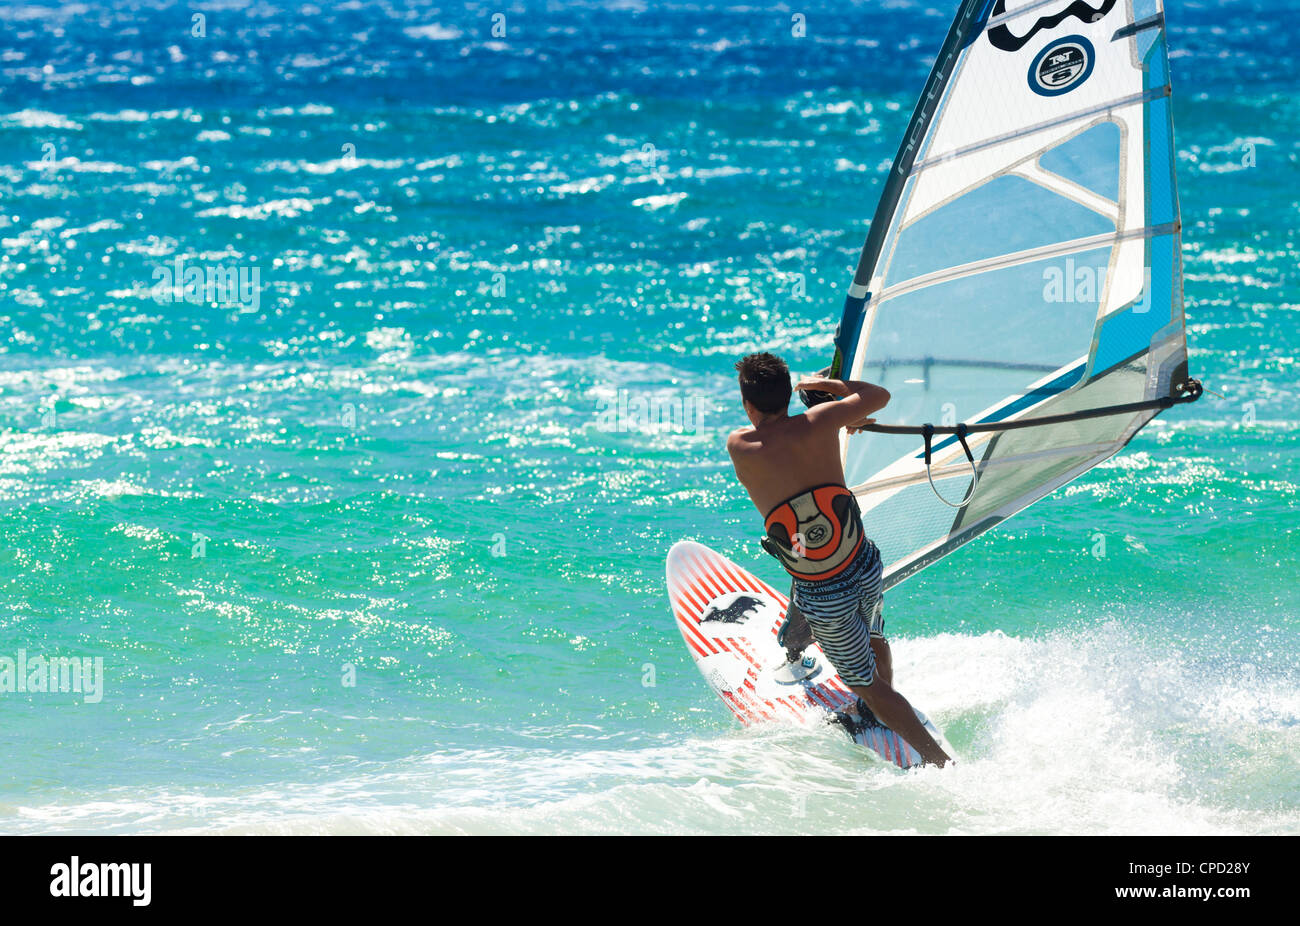 Big Jump windsurfing in high Levante winds in the Strait of Gibraltar, Valdevaqueros, Tarifa, Andalucia, Spain, - Stock Image